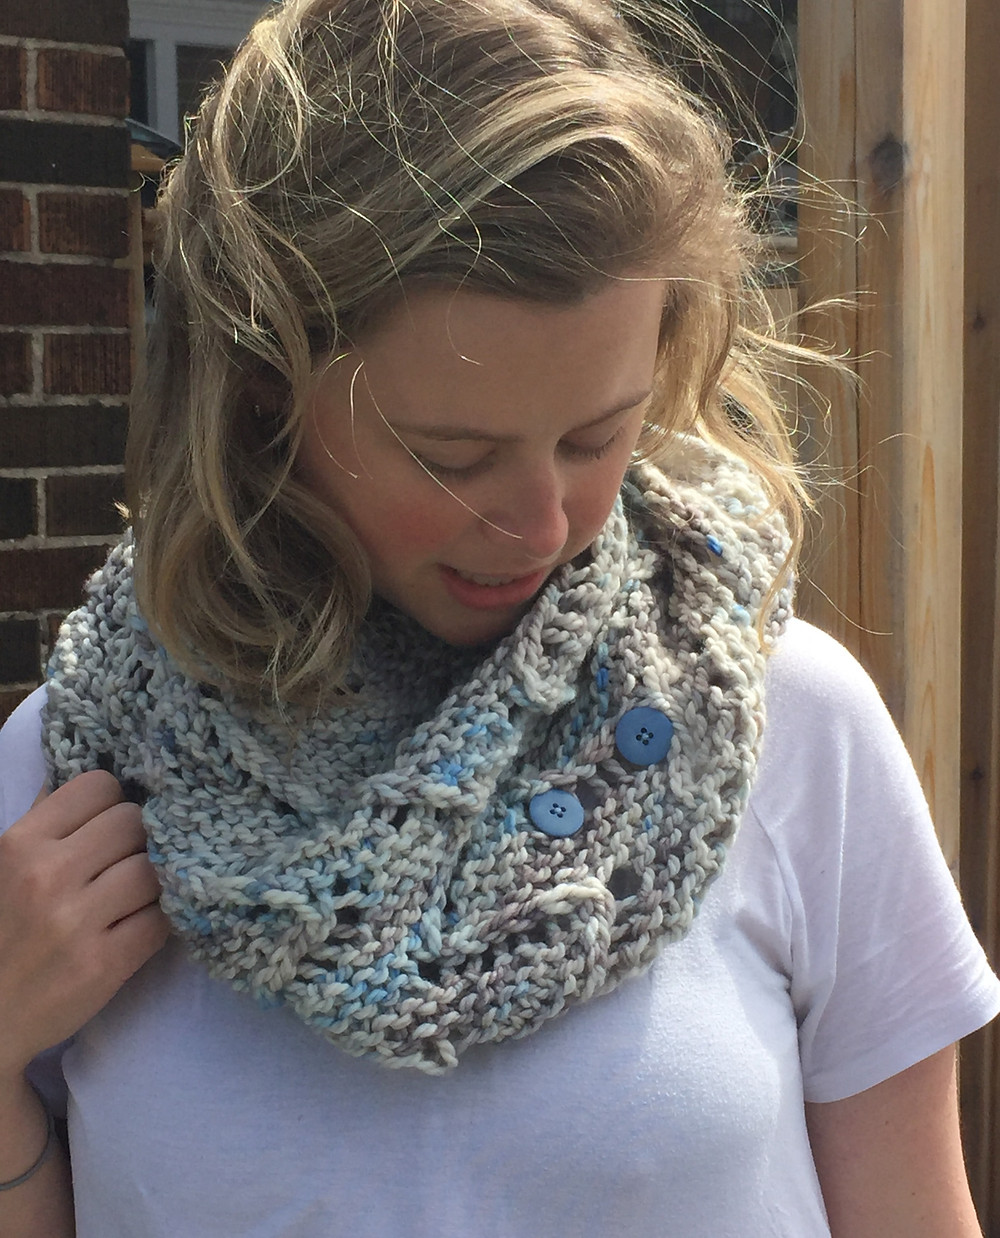 Nicky modelling Chasm, a blue and grey chunky lace shawlette fastened with two buttons around her neck like a cowl